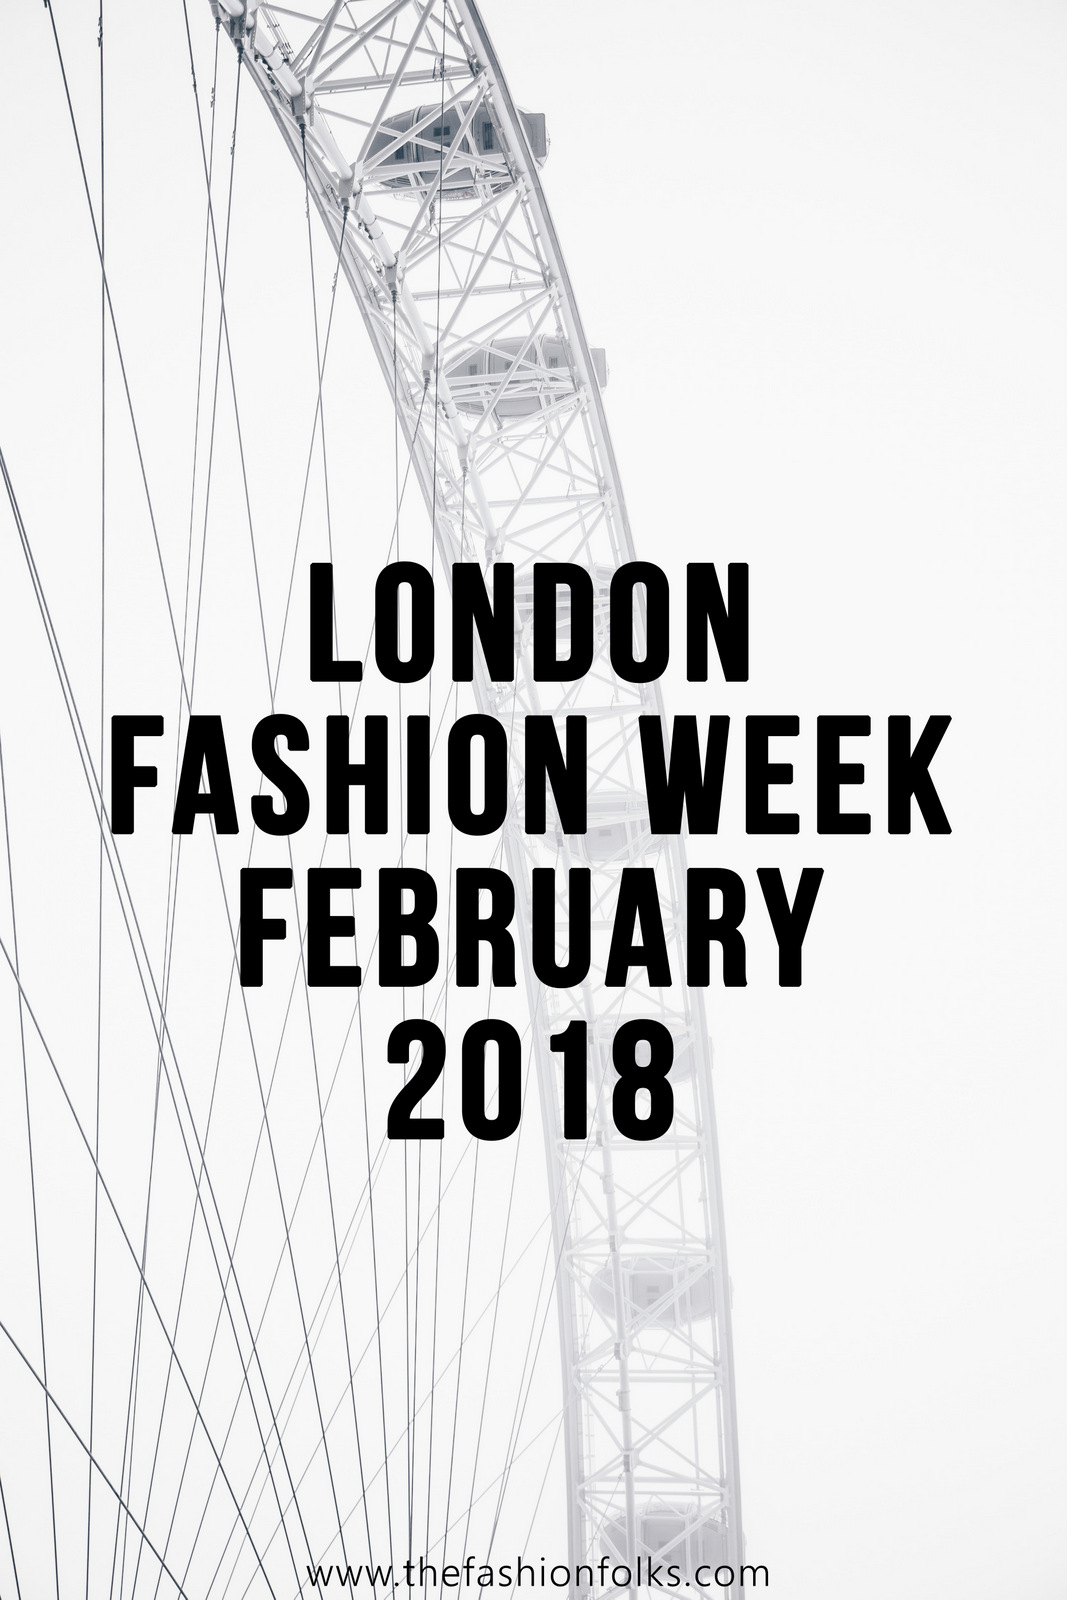 Huishan Zhang Fall 2018 - London Fashion Week February 2018